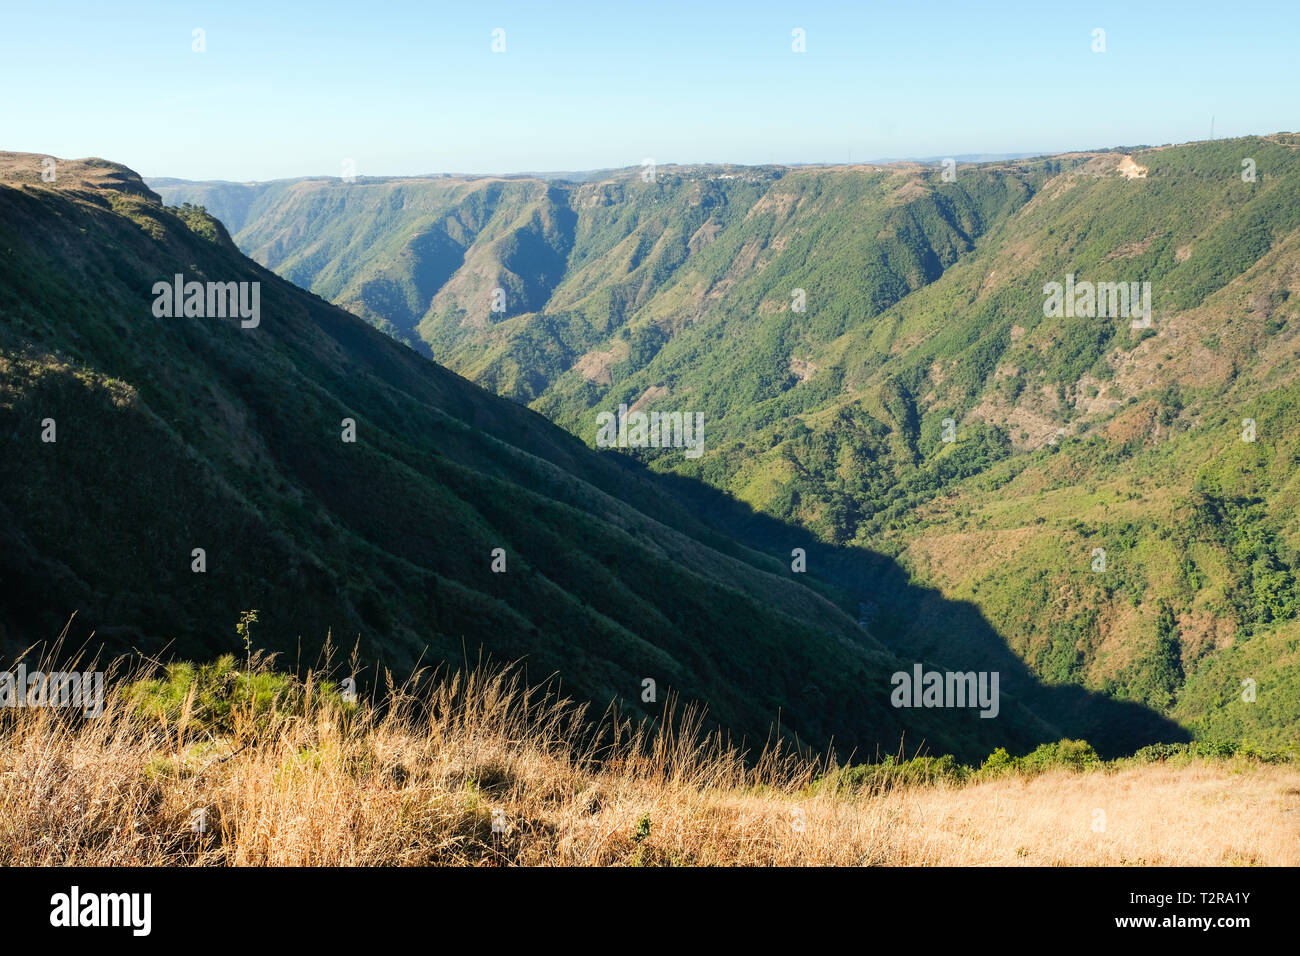 Mountains and valleys of the Khasi Hills, Meghalaya